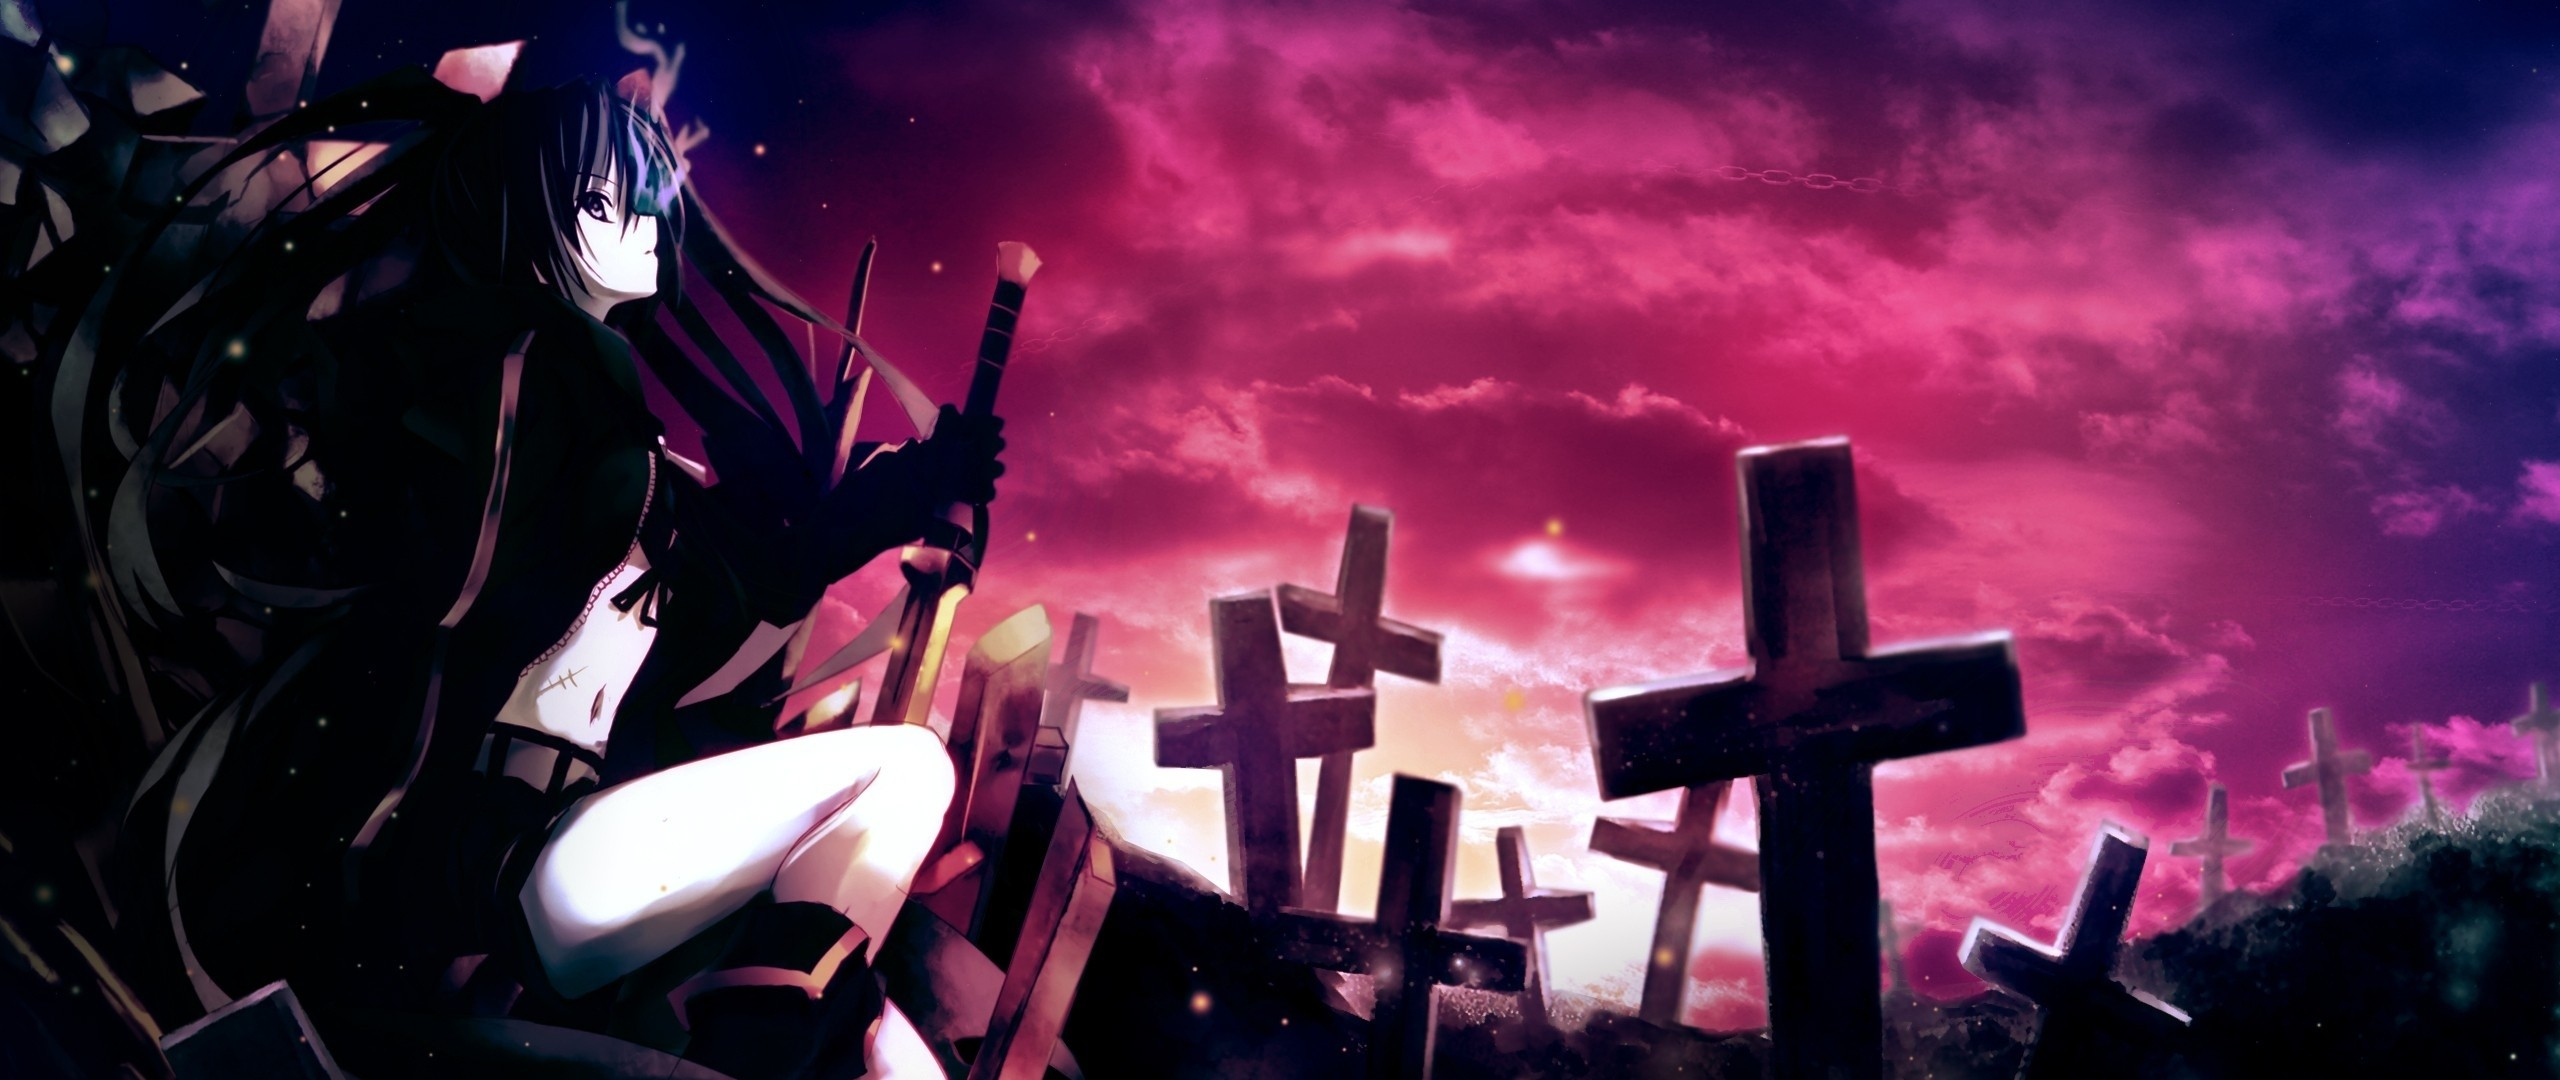 Preview wallpaper anime, girl, thoughtful, sword, cemetery, darkness  2560×1080